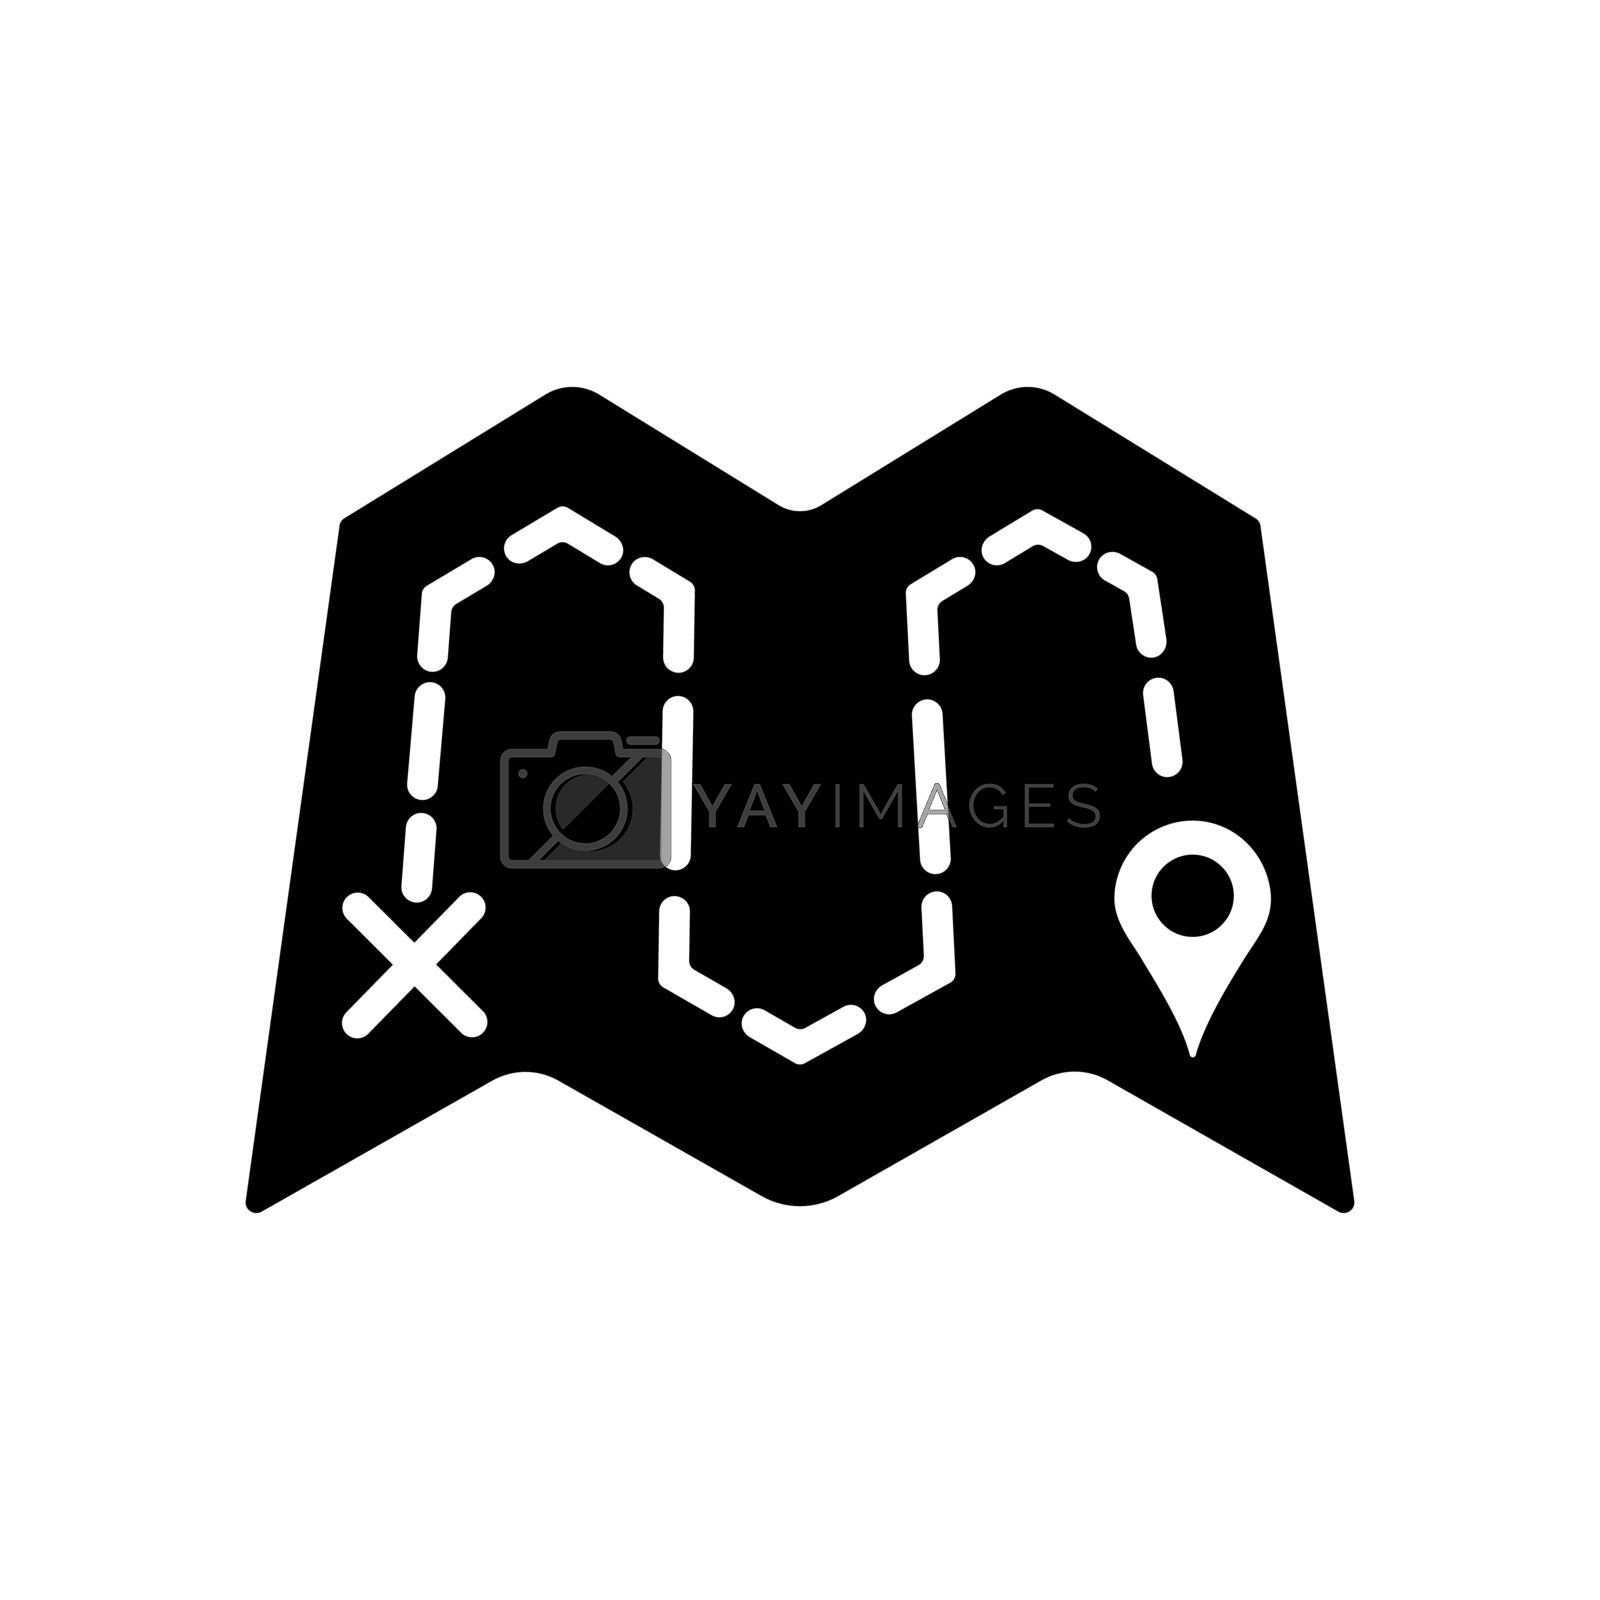 Map with route vector glyph icon. Navigation sign. Graph symbol for travel and tourism web site and apps design, logo, app, UI